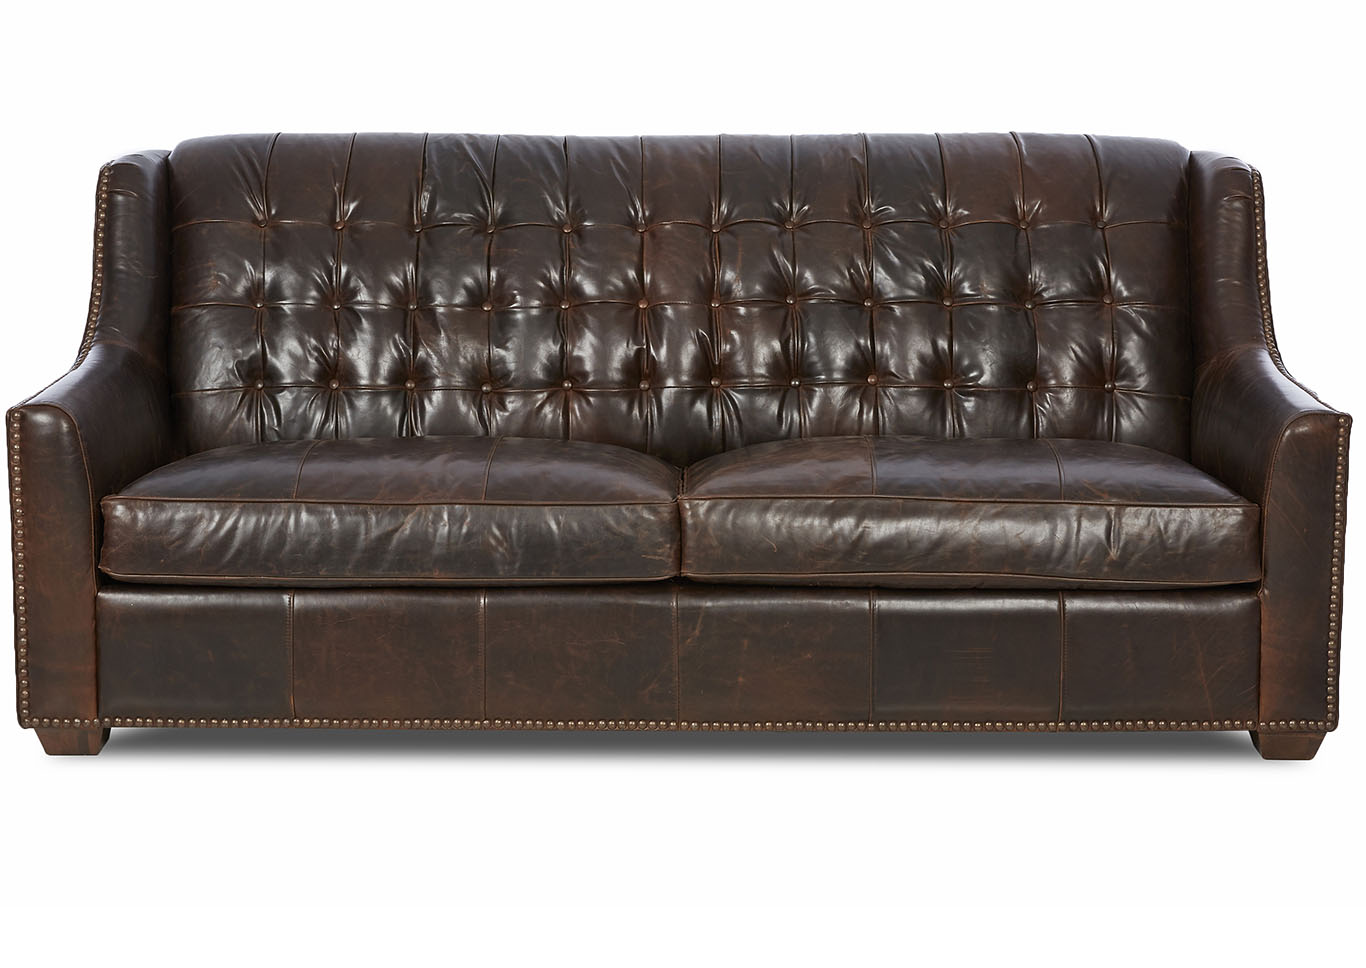 Pennington Dark Brown Leather Stationary Sofa,Klaussner Home Furnishings